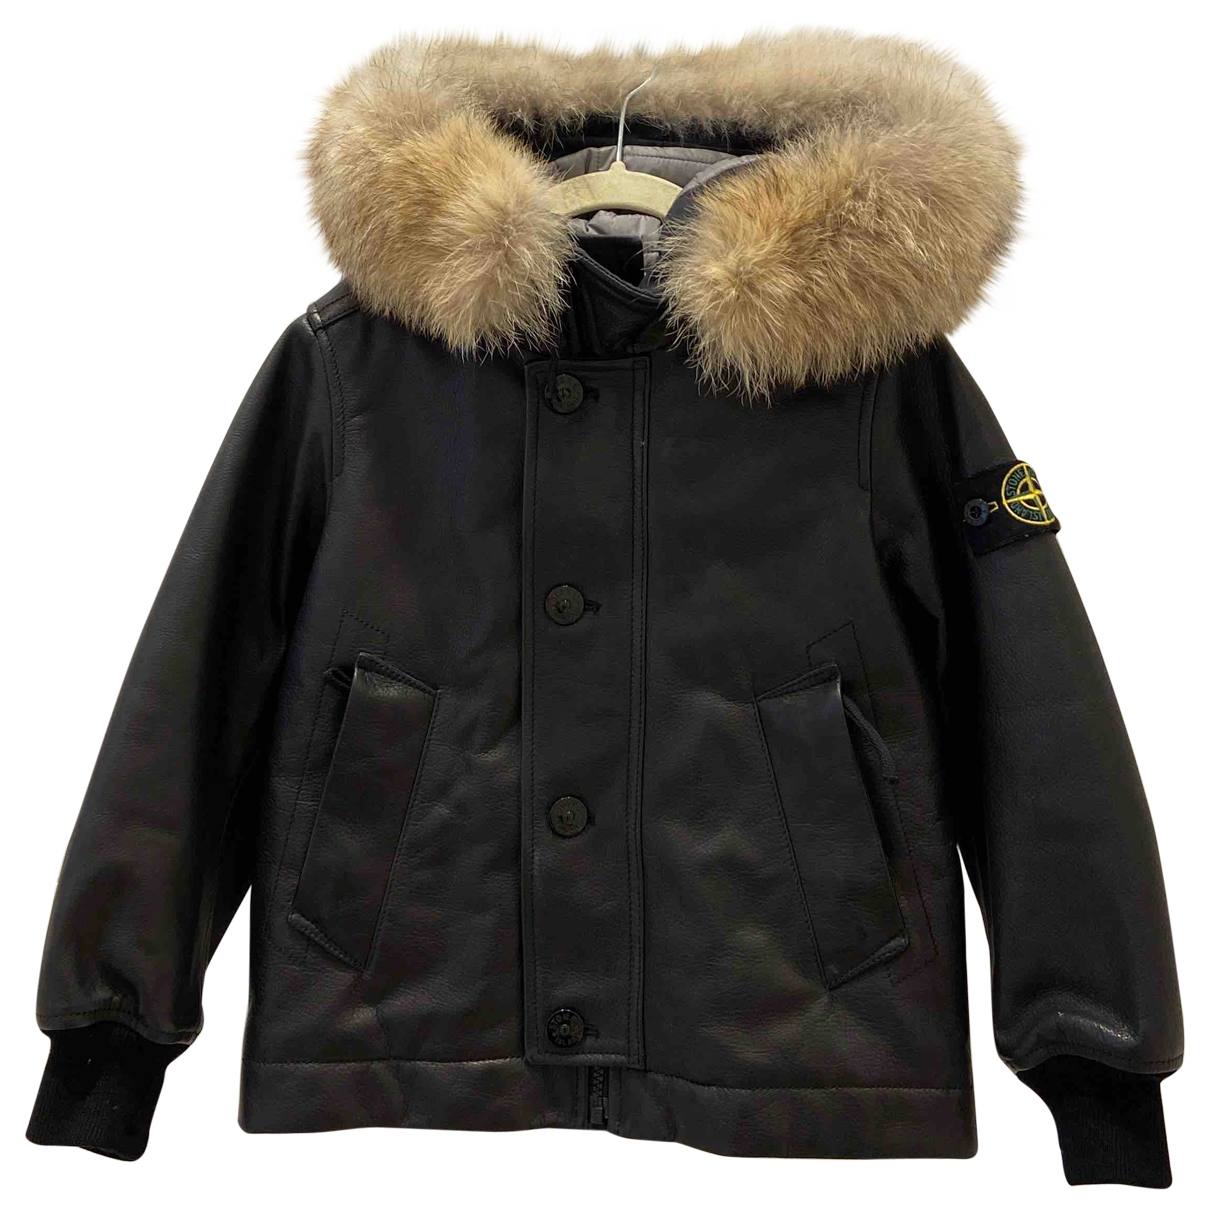 Stone Island \N Black Leather jacket & coat for Kids 6 years - until 45 inches UK